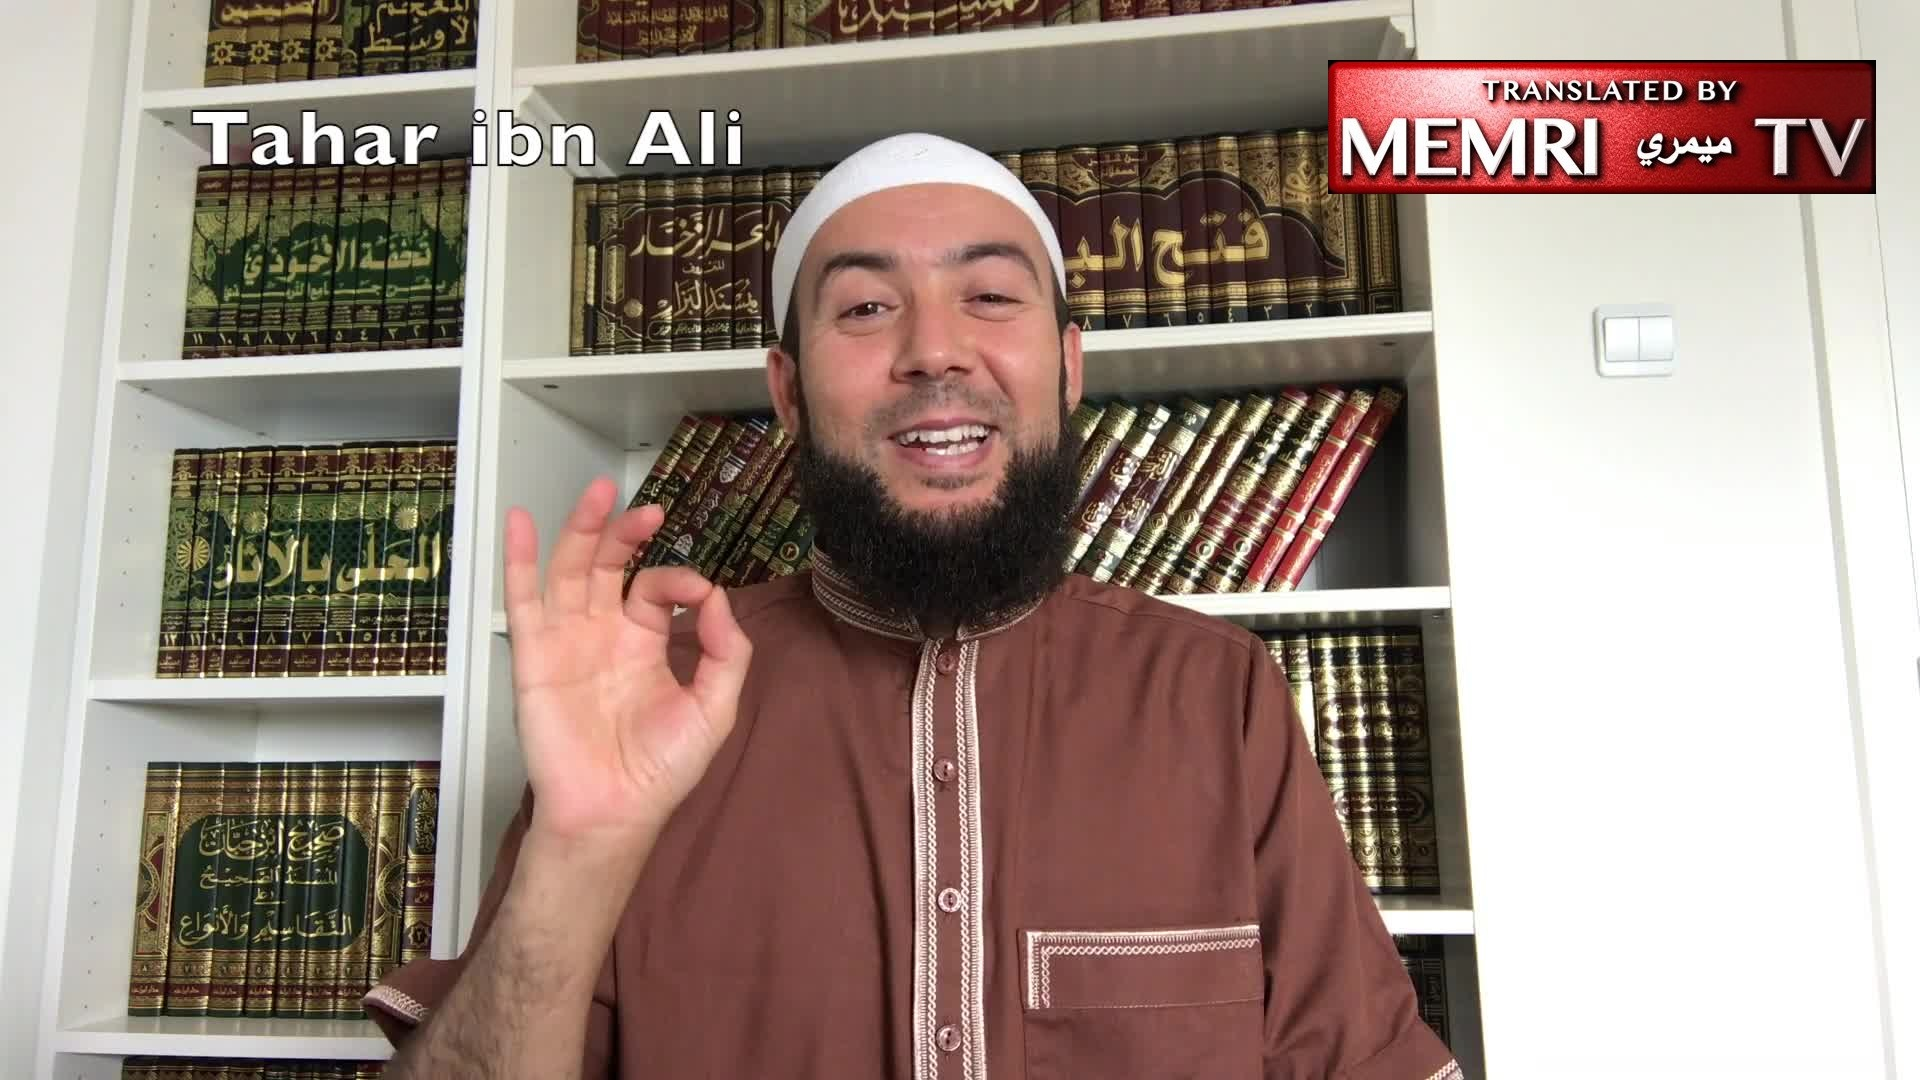 Antwerp-Based Preacher Tahar Ibn Ali against Instating Islamic Law: These Groups Call for Nothing but Hatred, We Need Freedom, Respect for the Other